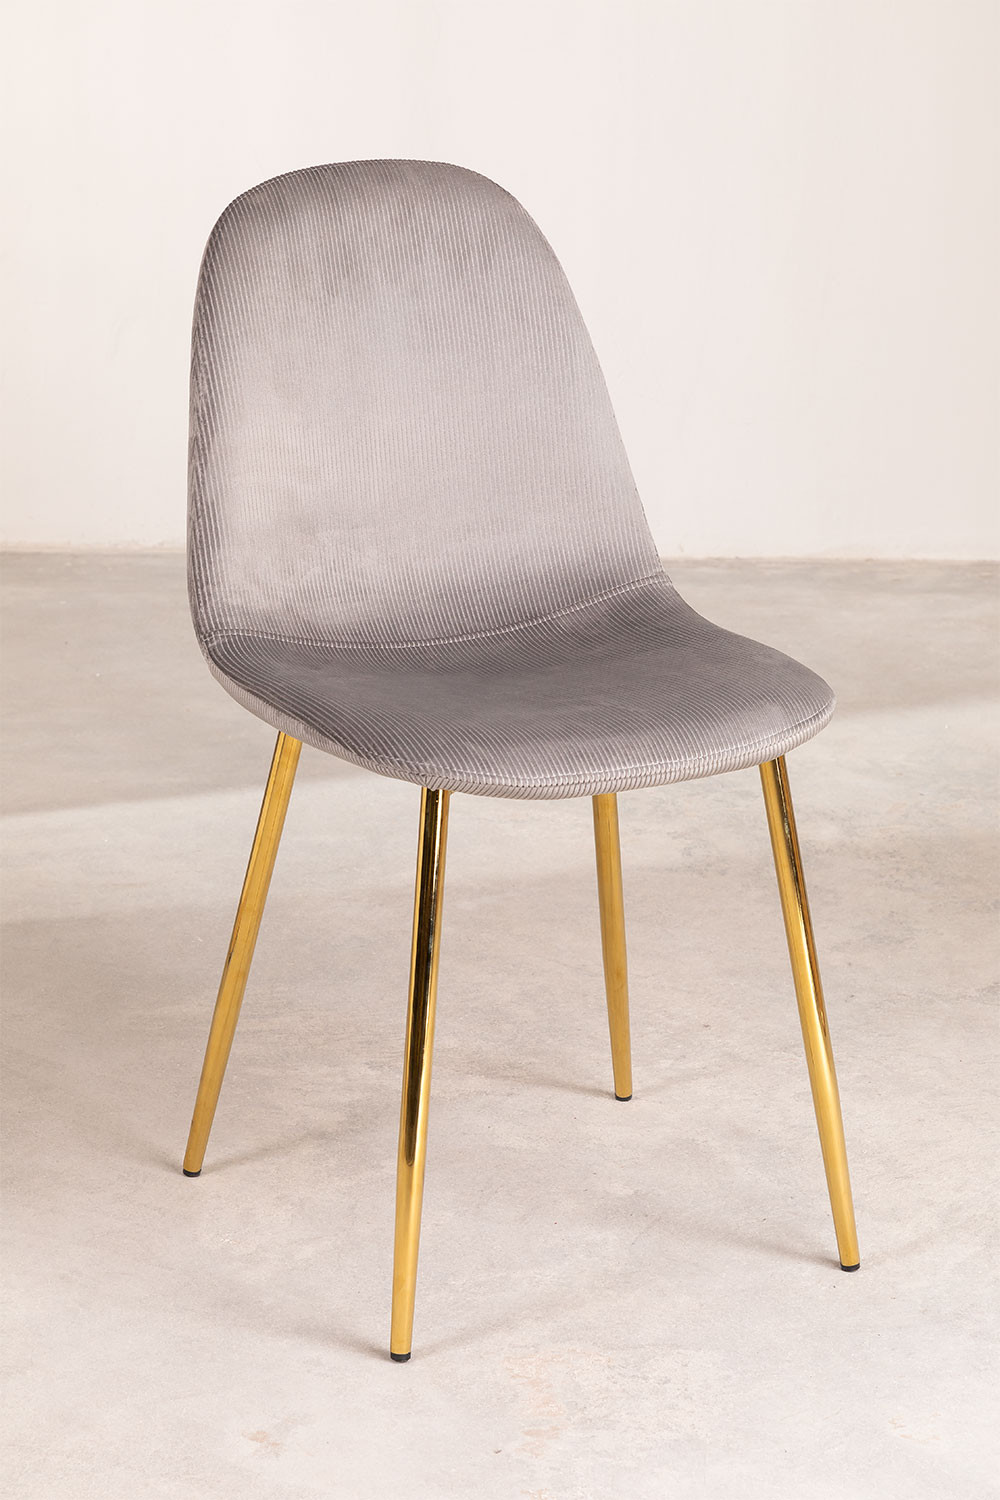 Pack of 2 glamm chairs in Corduroy, gallery image 1